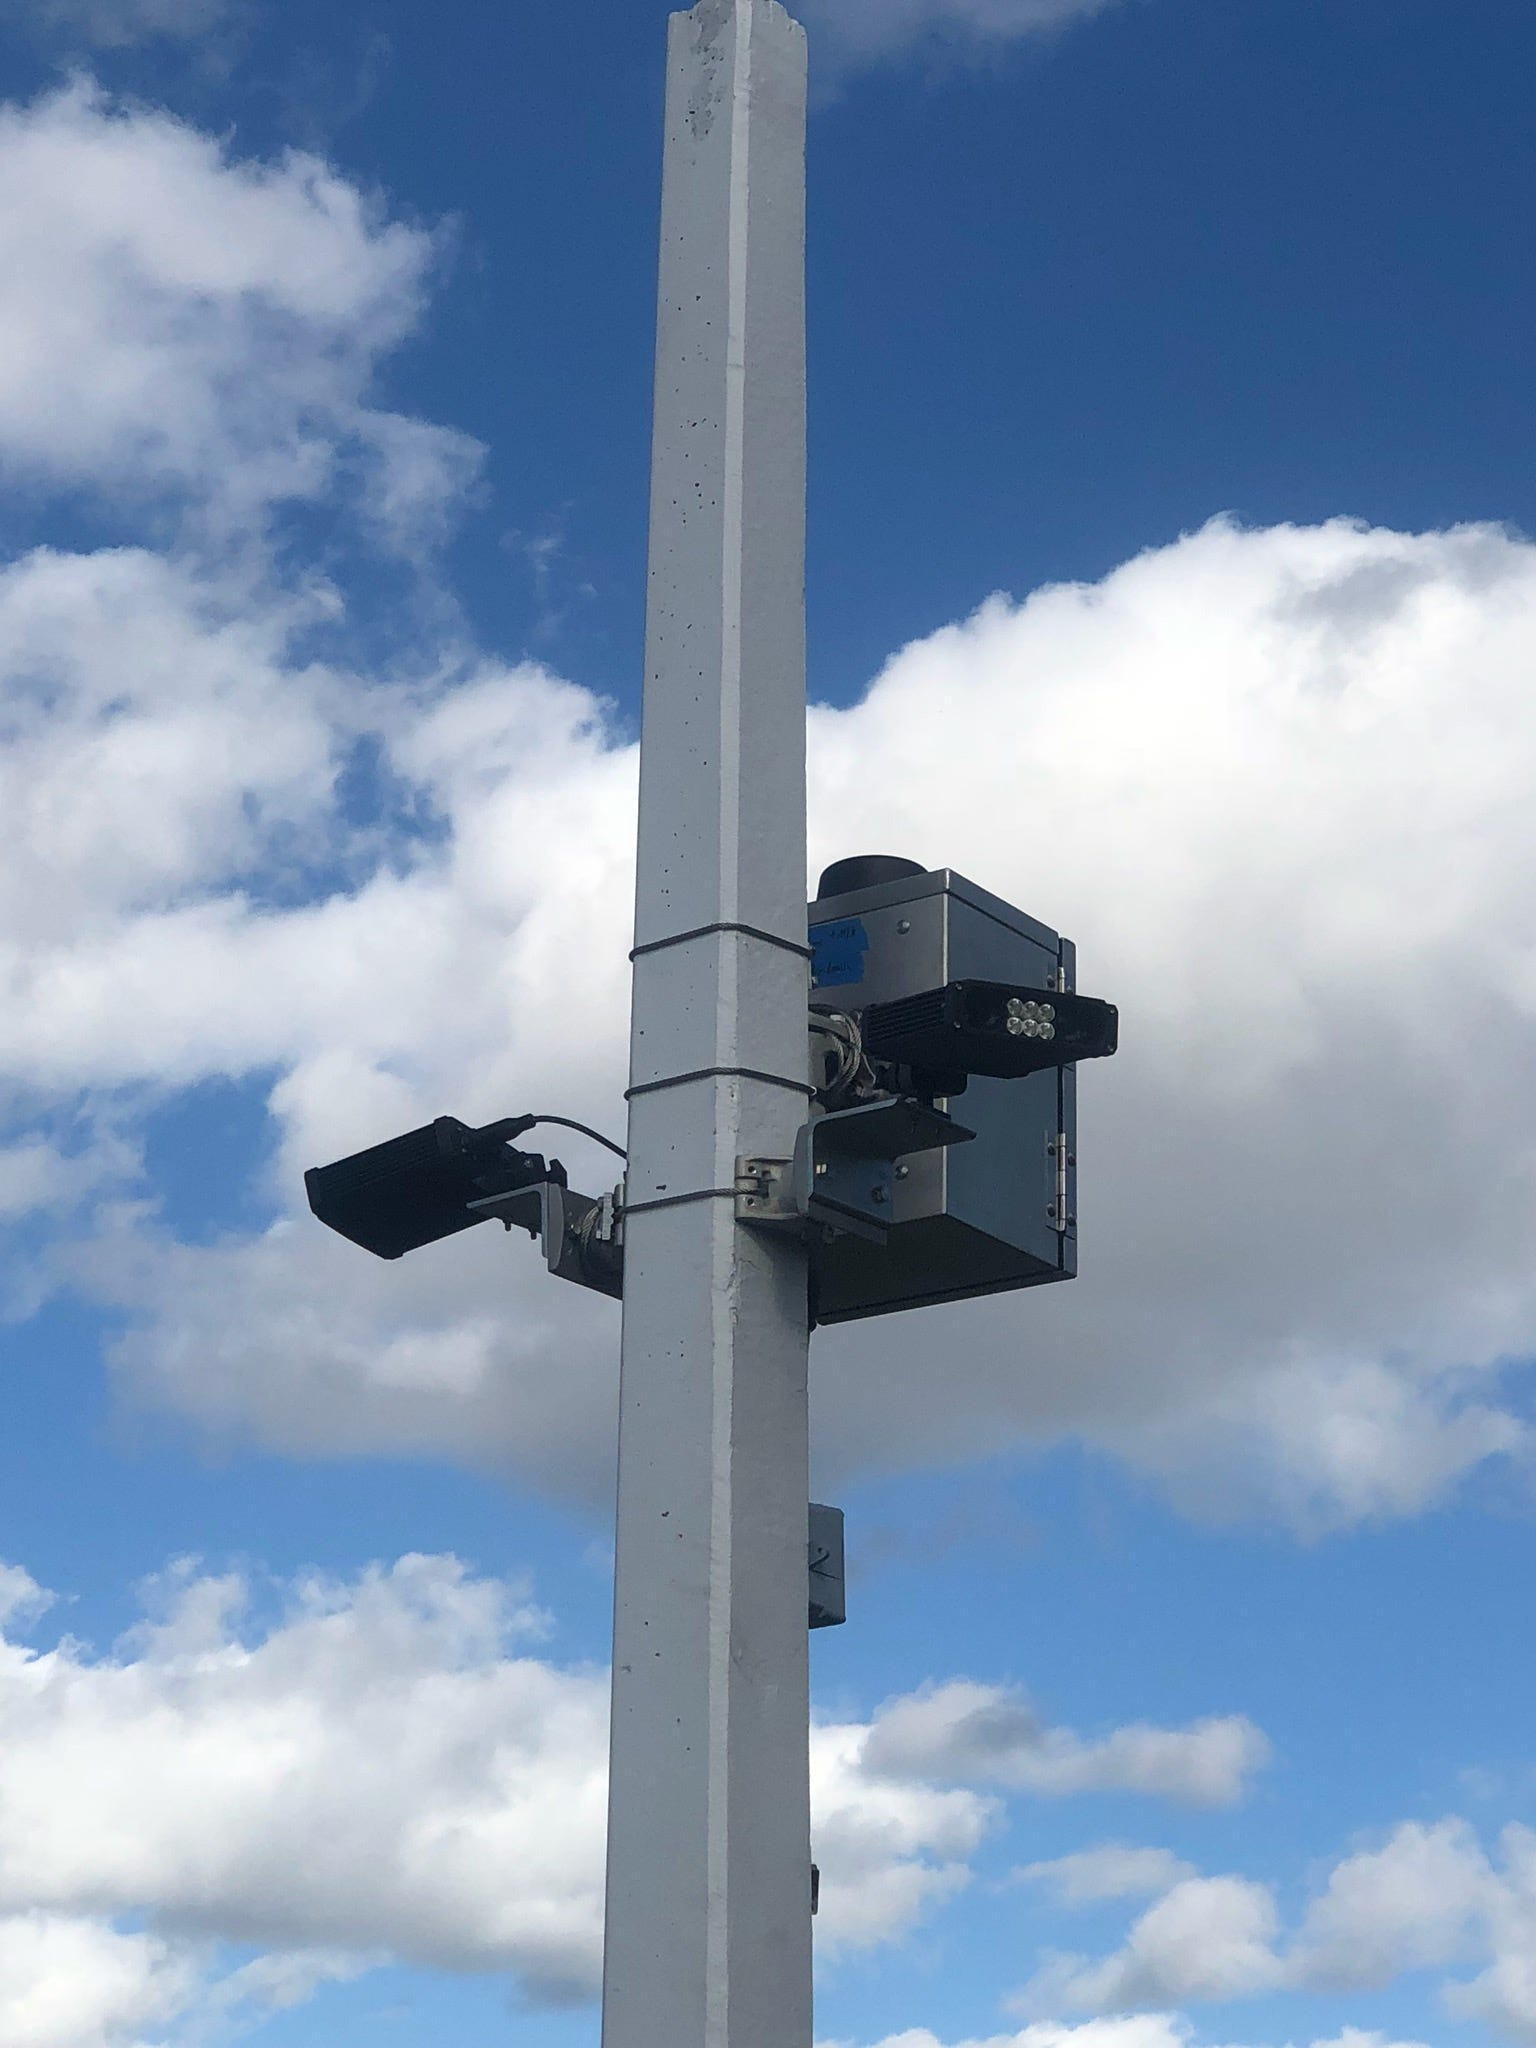 Marco Island installs automatic license plate readers by Jolley, Goodland bridges 2